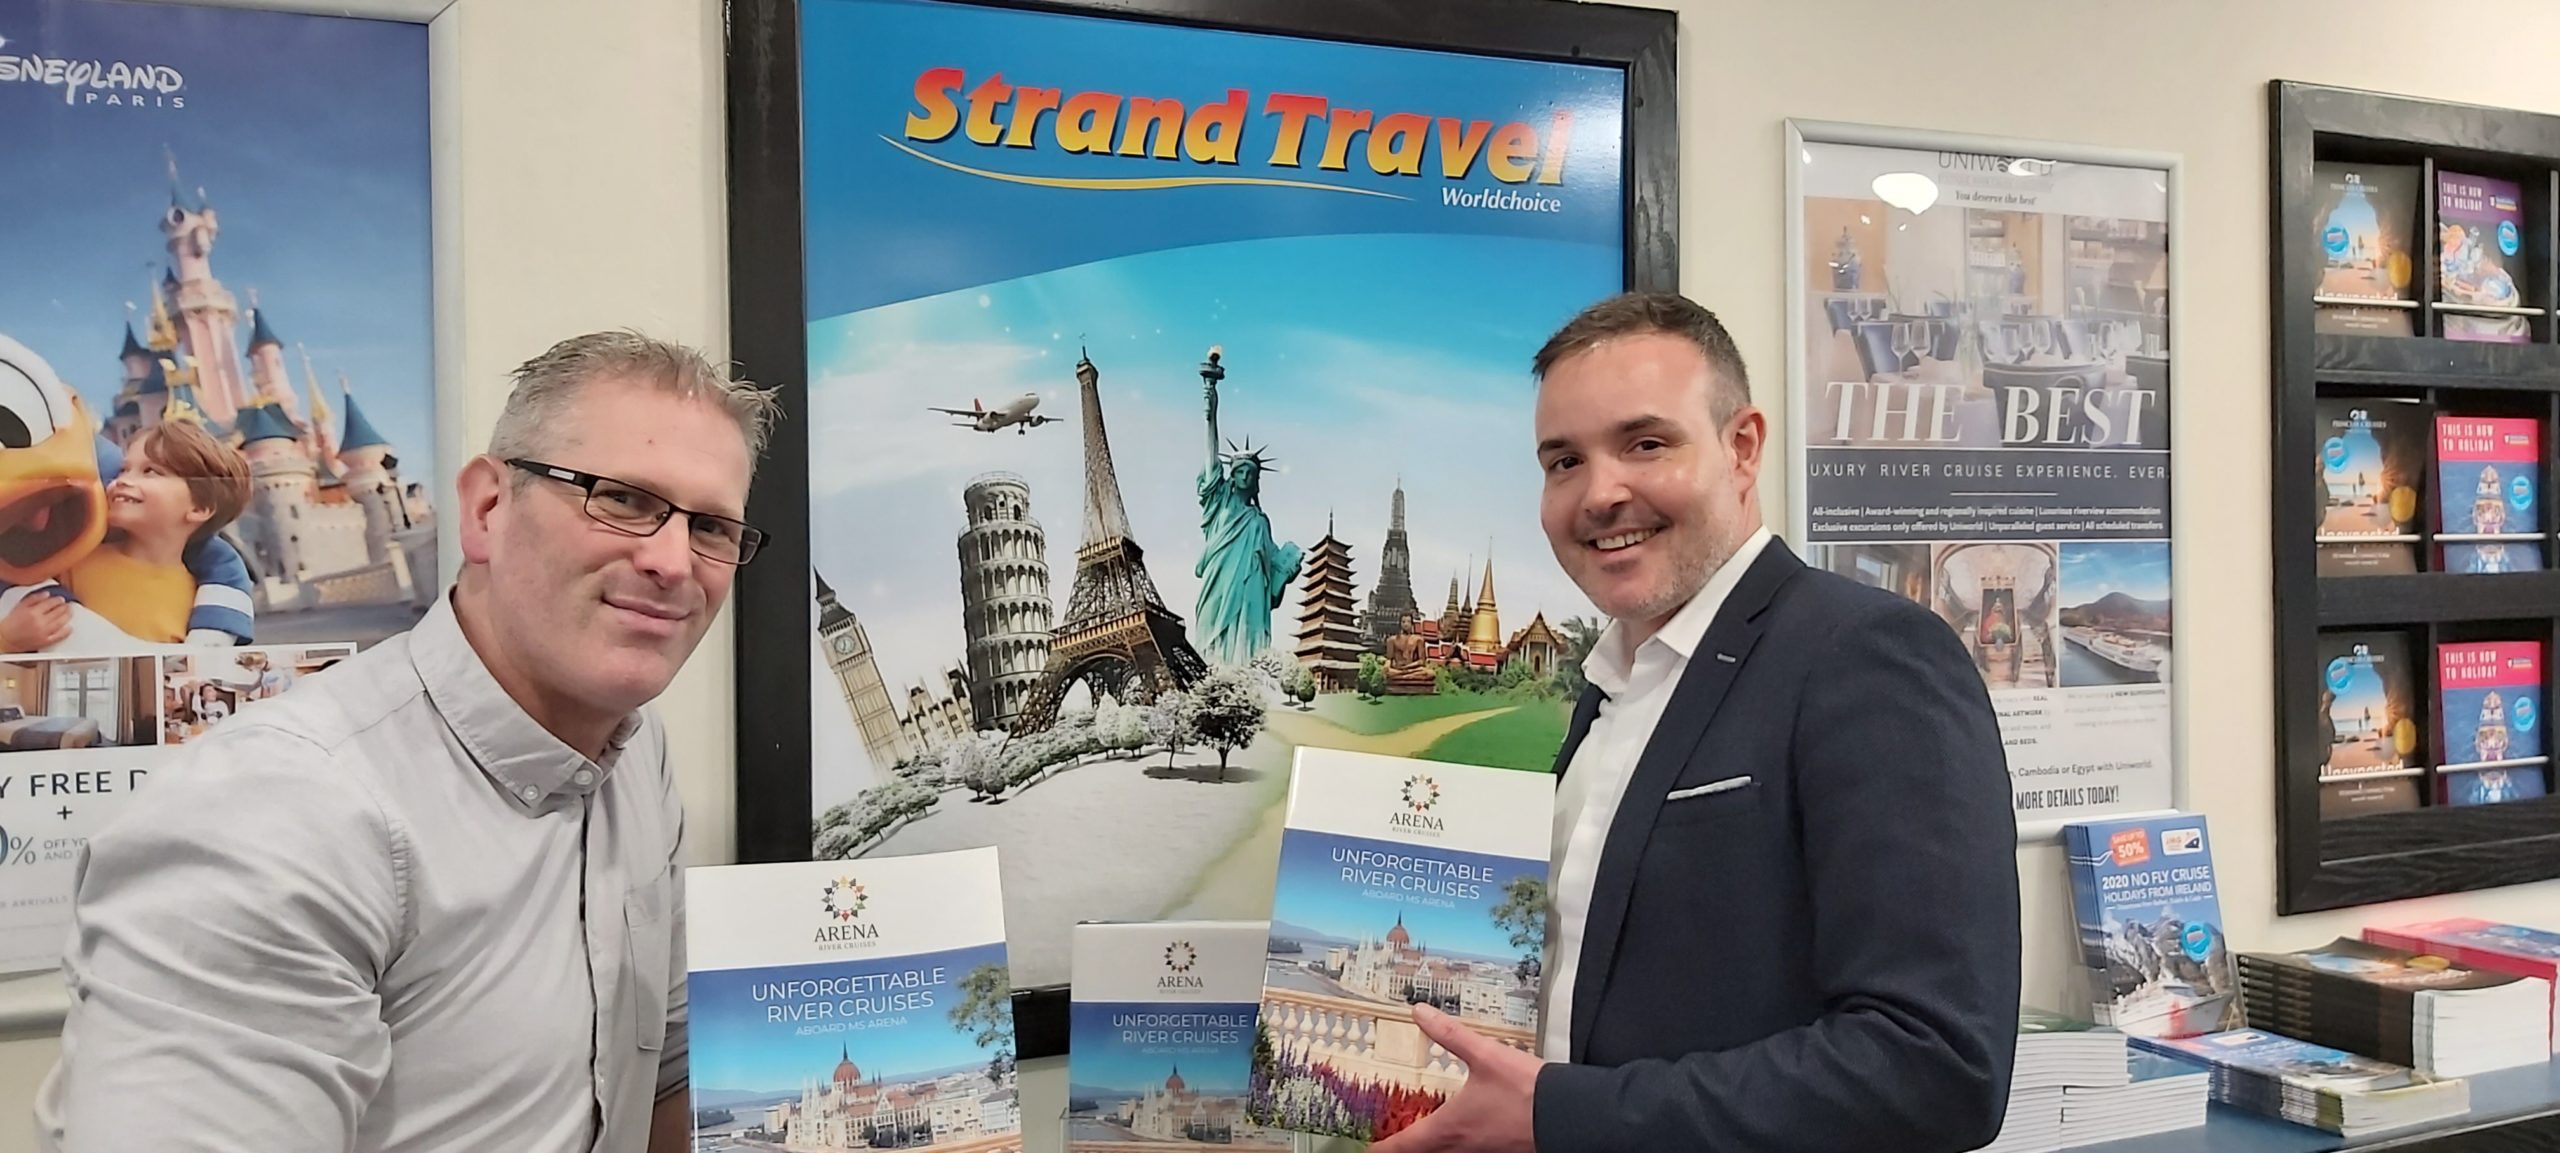 Strand Travel love Arena River Cruises